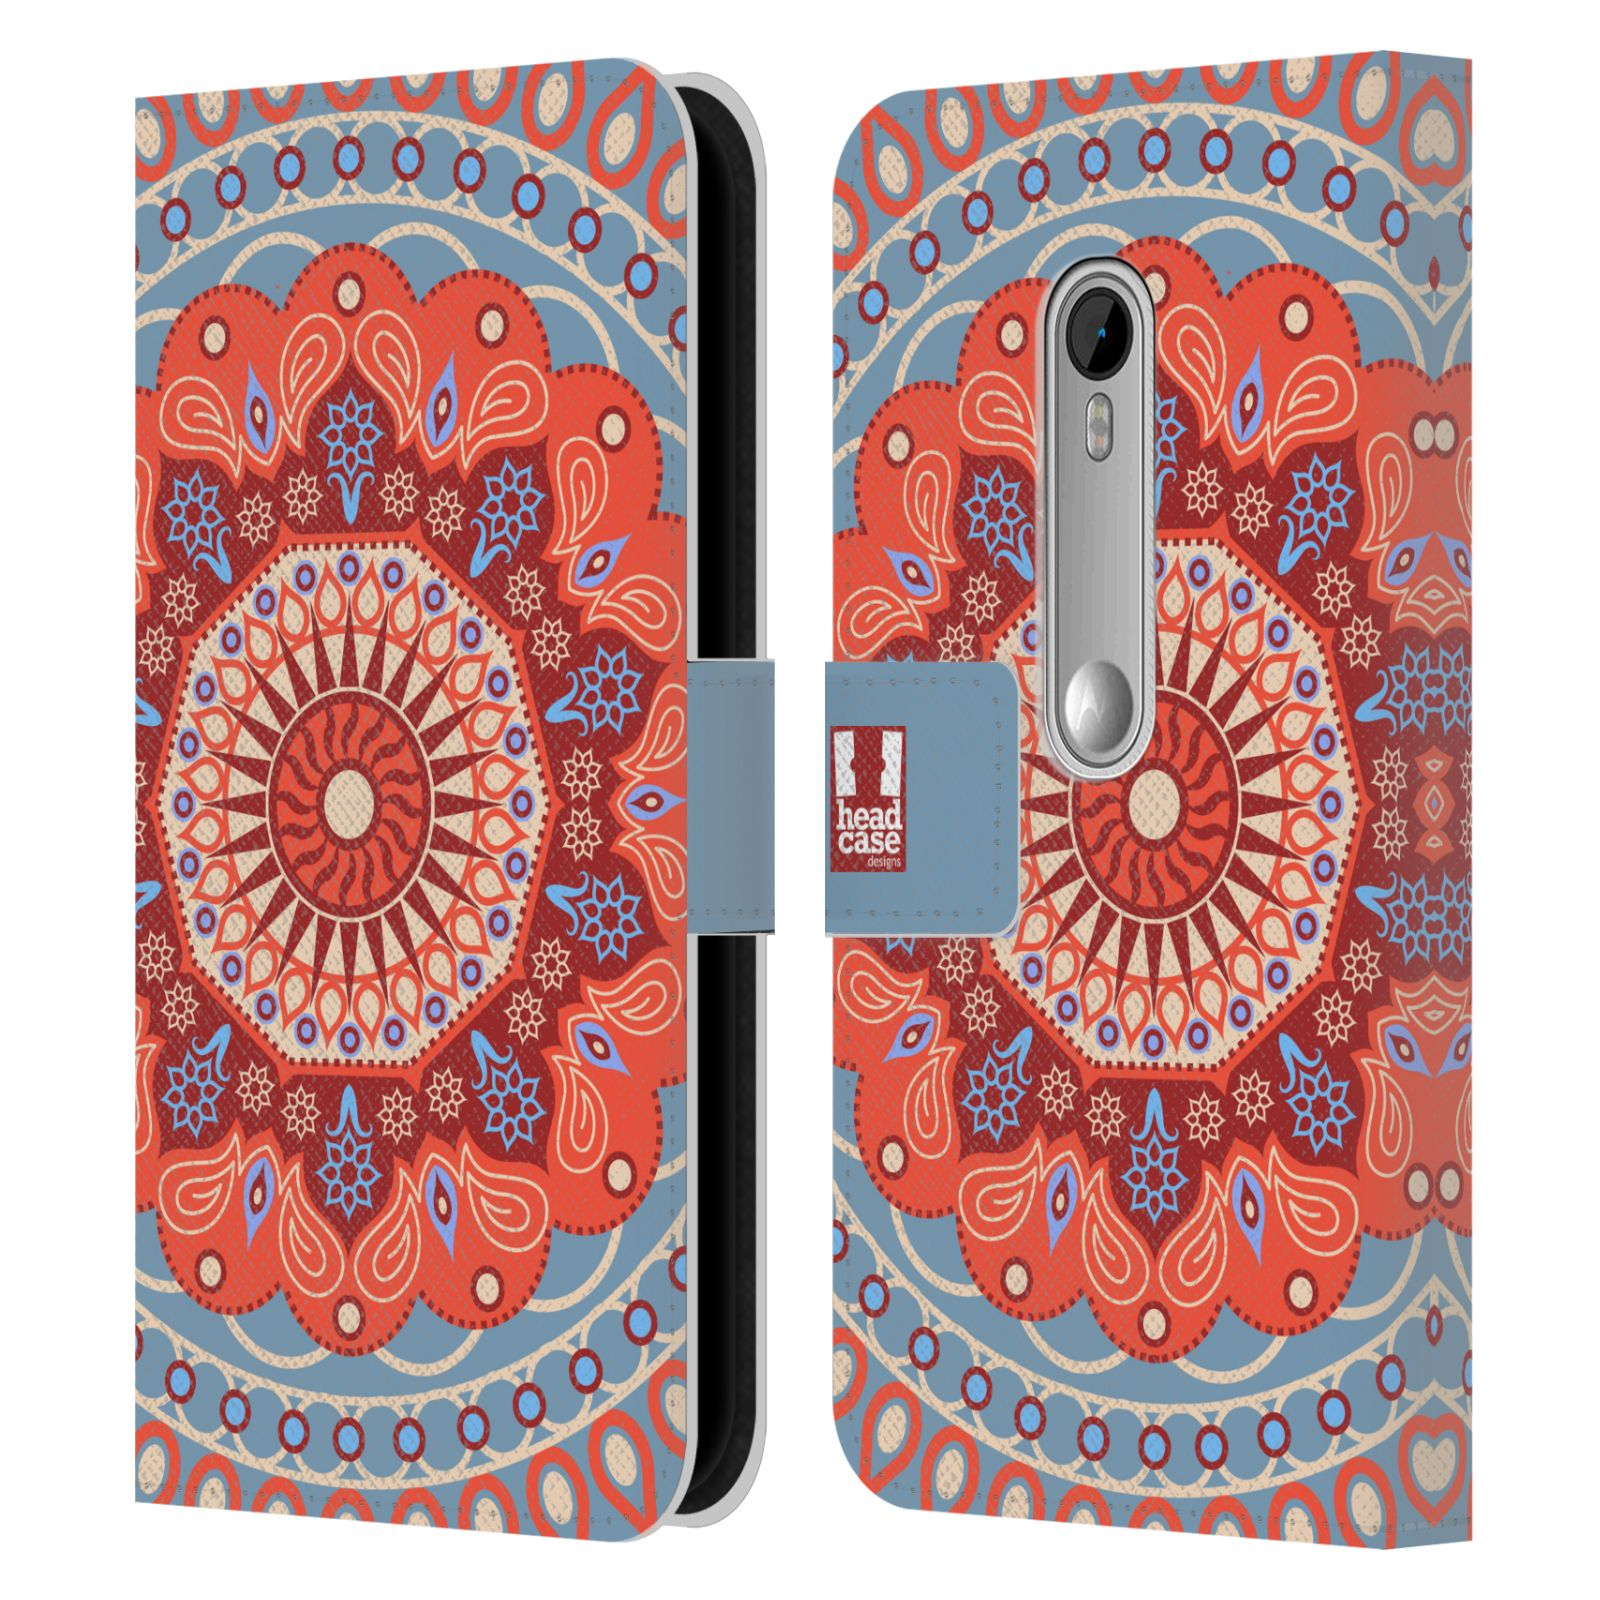 Leather Book Cover Design : Head case designs mandala leather book wallet cover